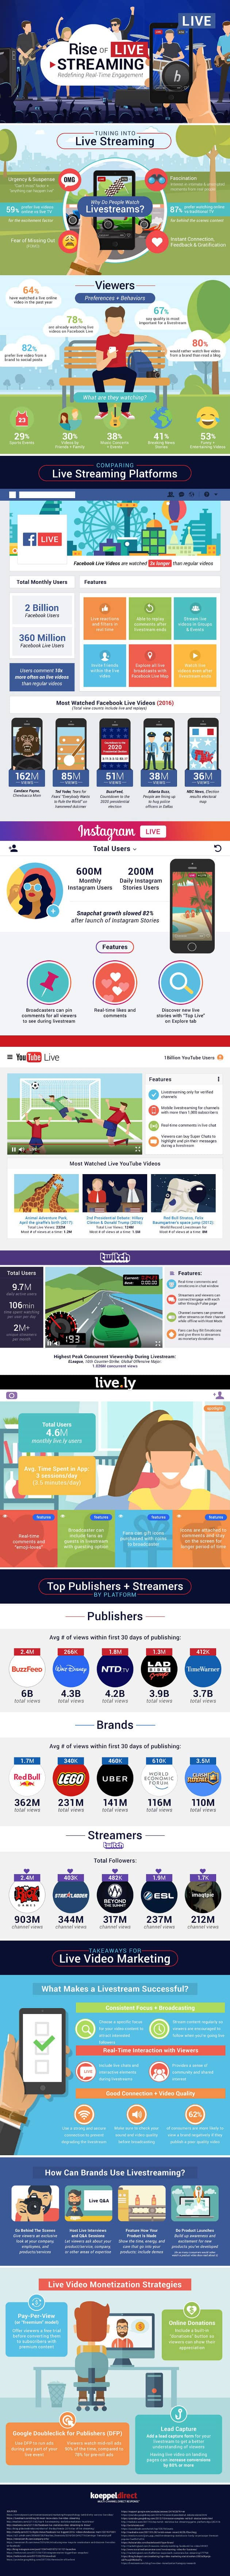 Statistics on the live streaming revolution.